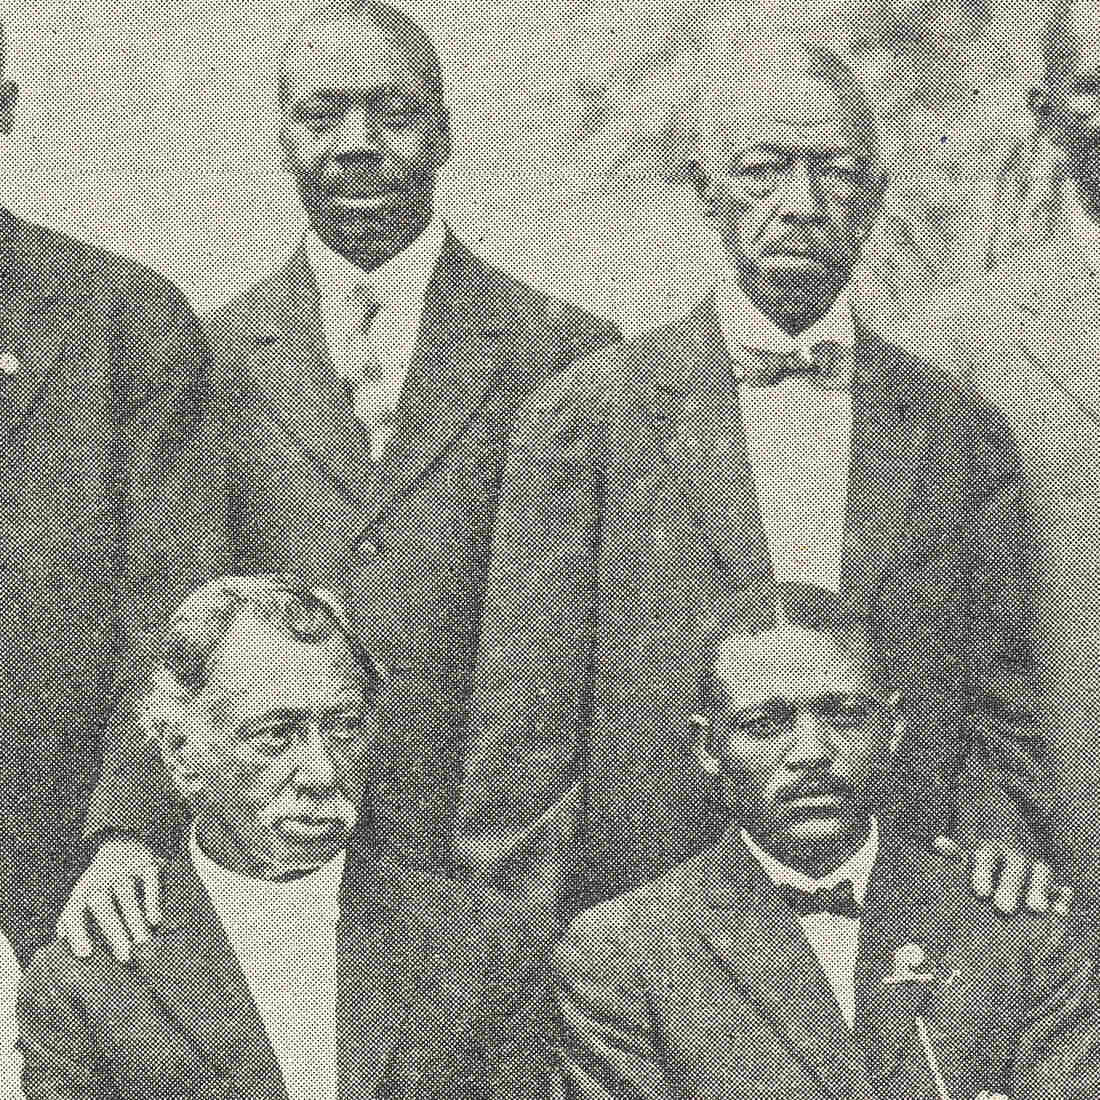 This image of the trustees of Emanuel AME appeared in the 1916 book, Centennial Encyclopedia of the African Methodist Church, by Richard R. Wright.